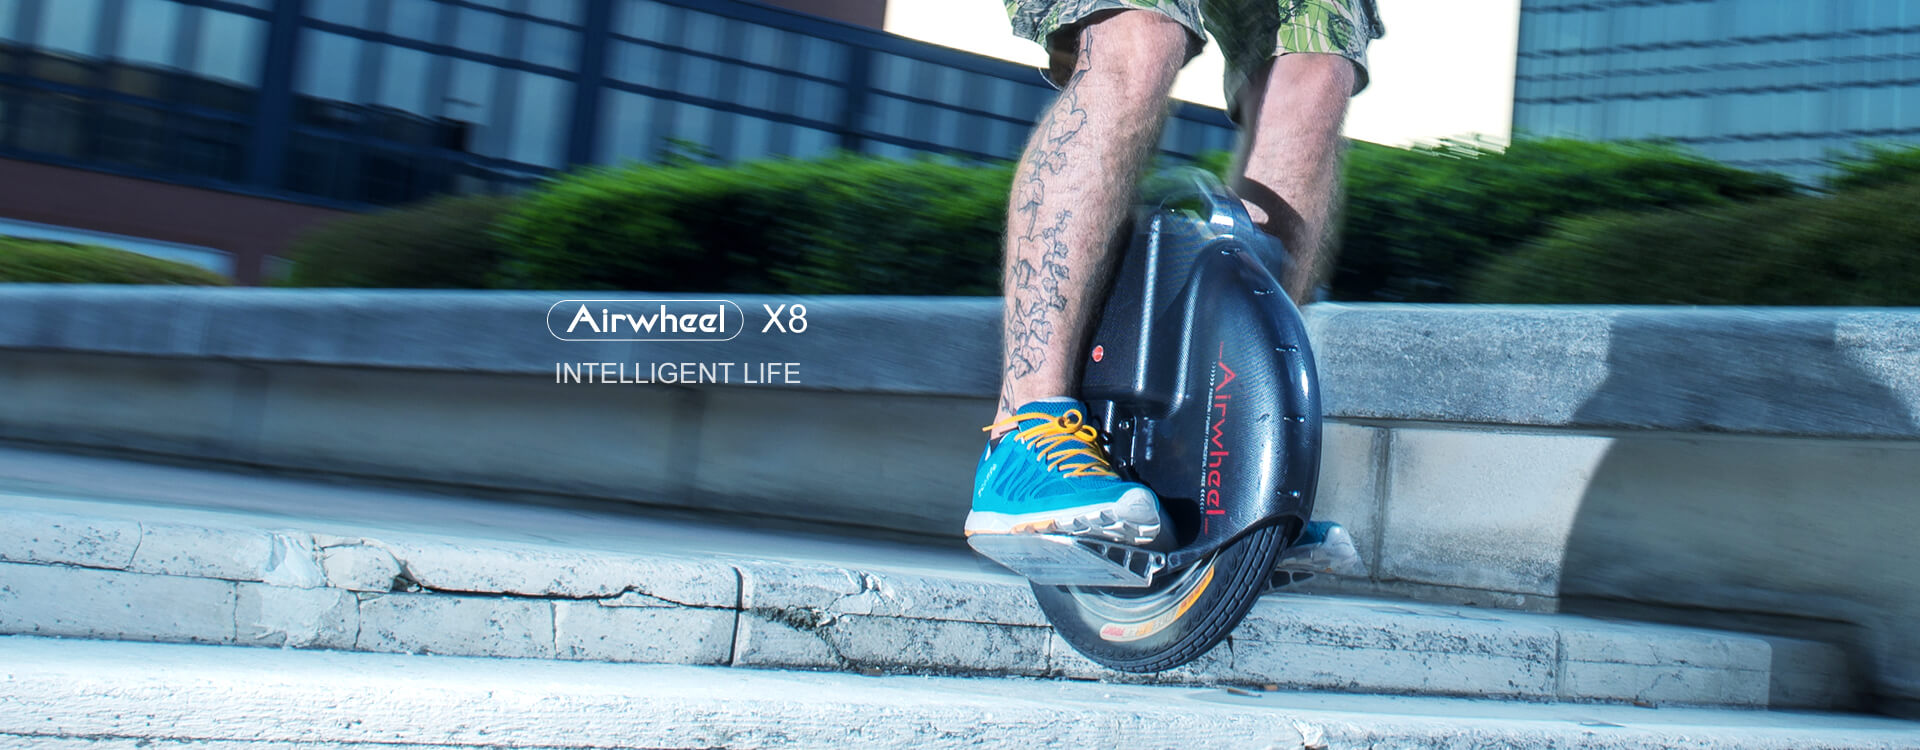 Airwheel X8 electric self-balancing unicycle